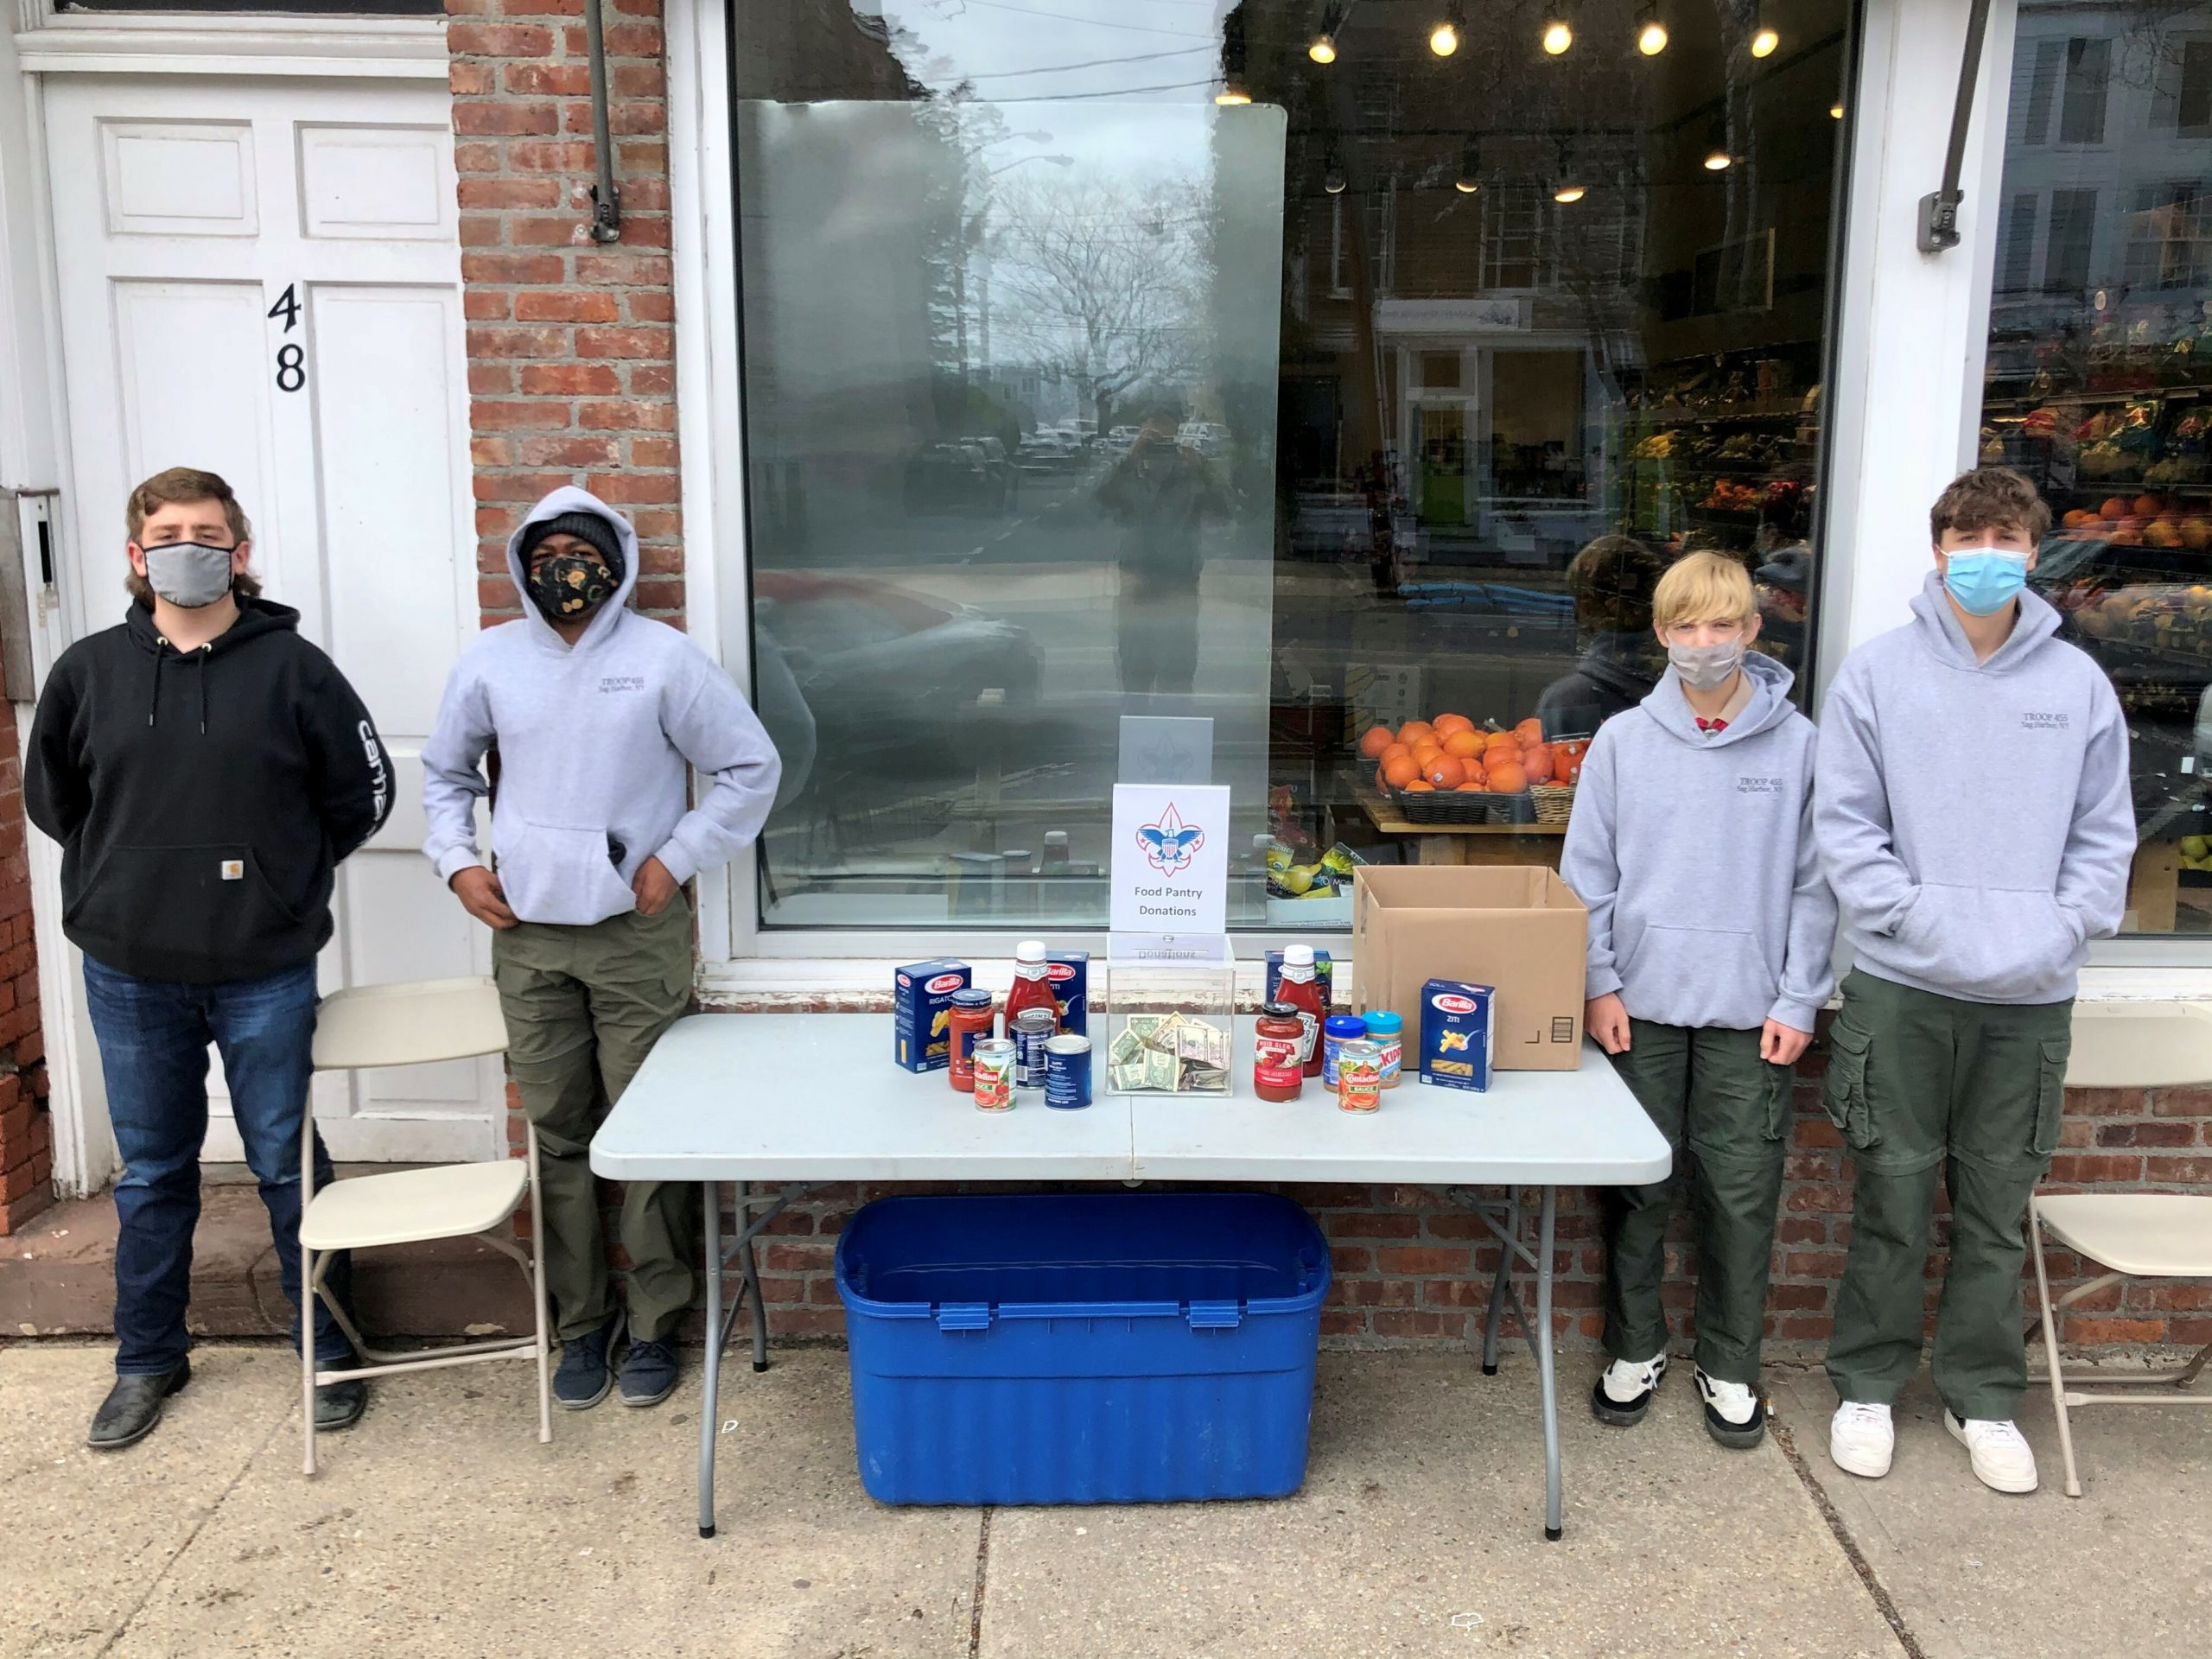 James Farrell, Keanu King, Michael Ramundo and Troy Remkus were a part of a food drive held by the Boy Scouts of Troop 455 Sag Harbor last Saturday, April 24, on Main Street in support of the Sag Harbor Food Pantry. The troop collected a large box of food donations and $208 to support the pantry's efforts.